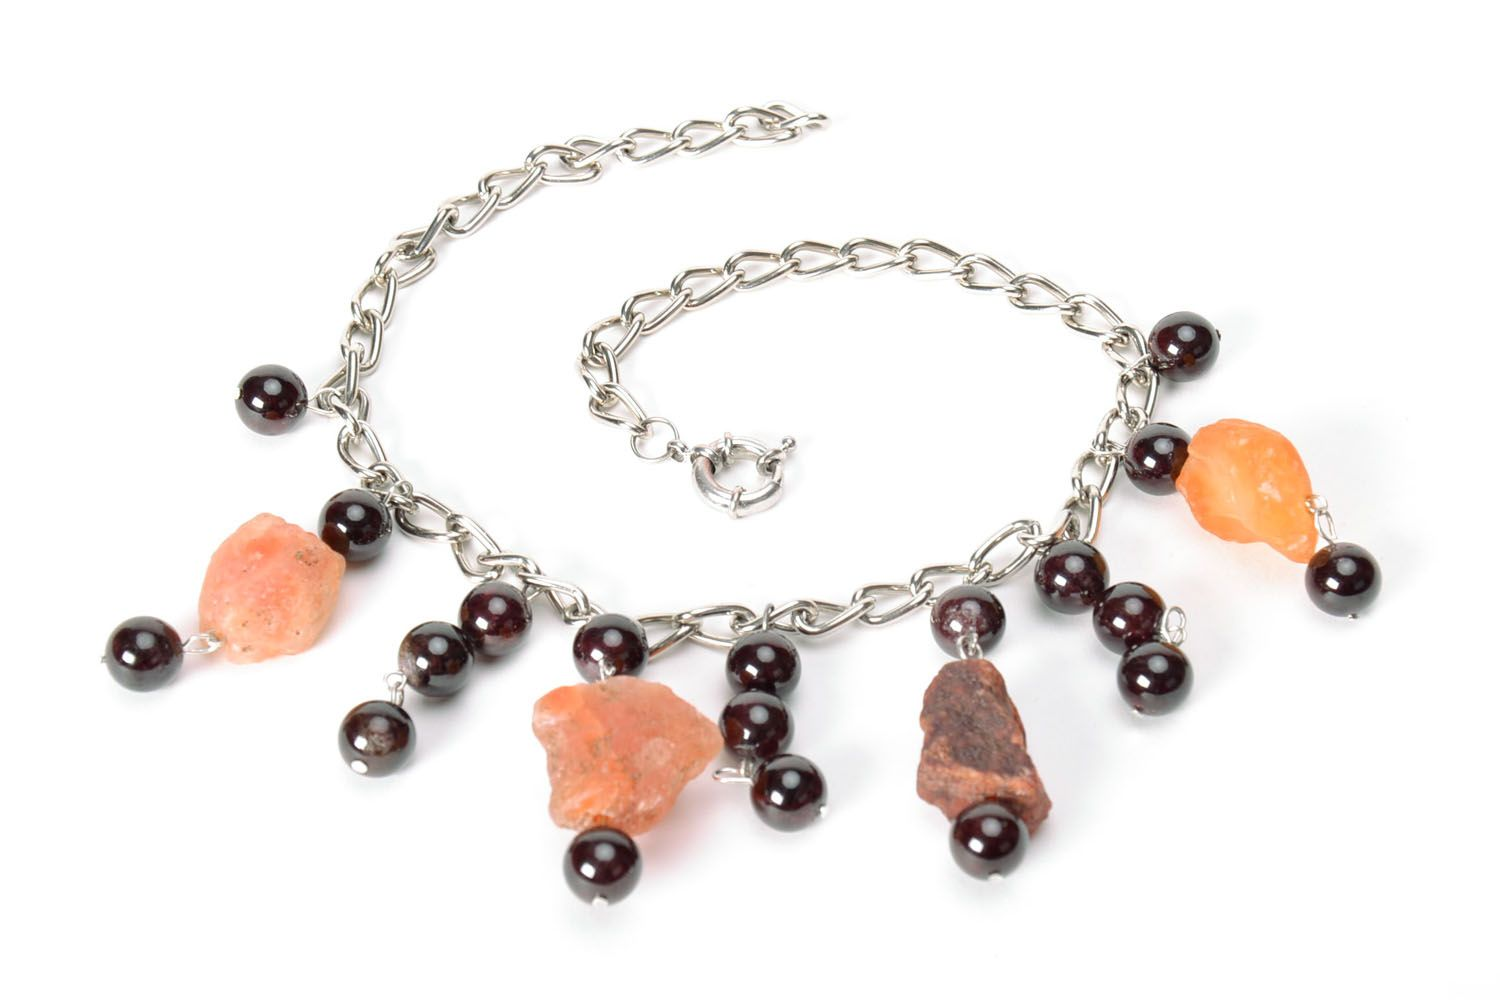 Fashionable necklace with natural stones photo 5